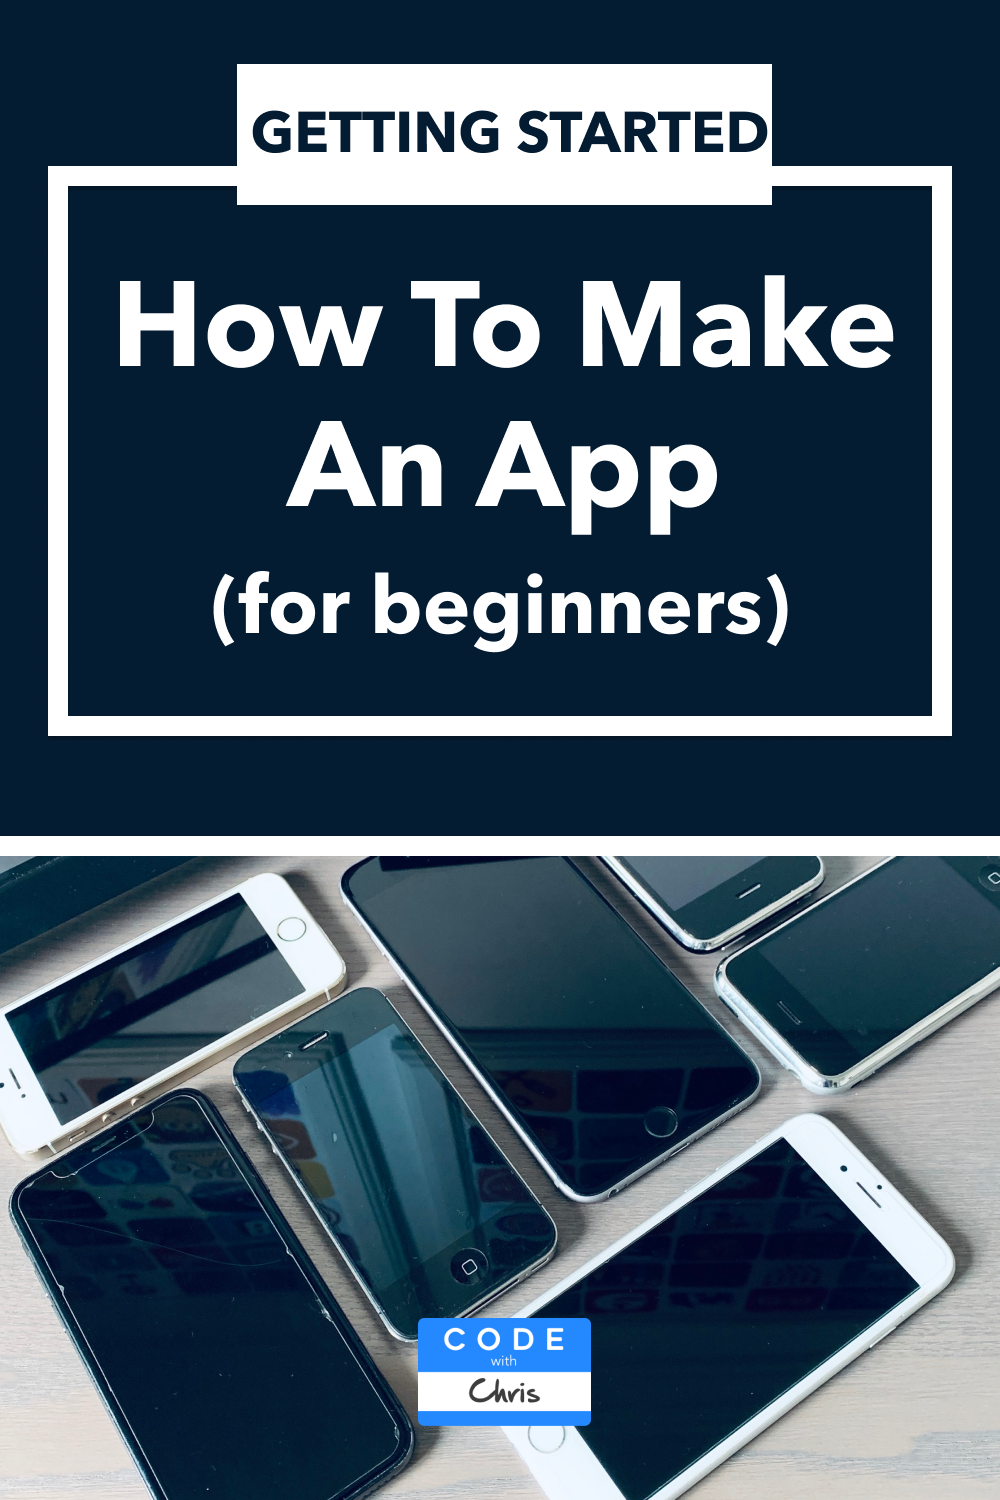 How To Make An App (for beginners)